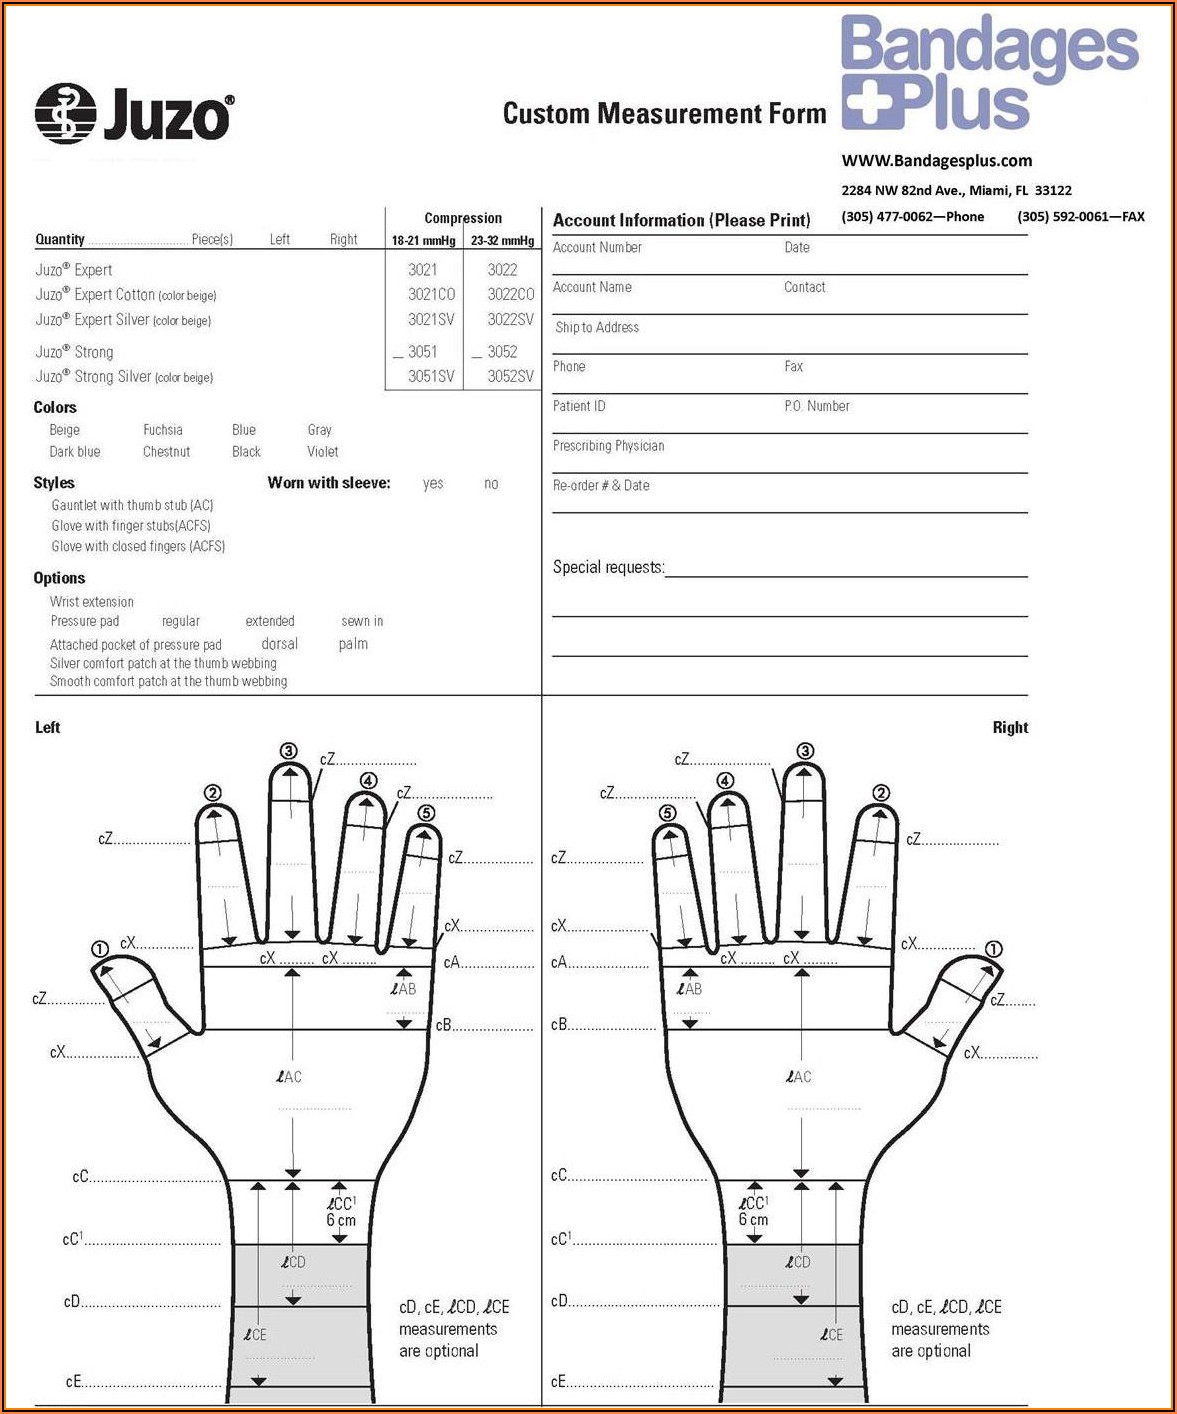 Juzo Ez Custom Measurement Form